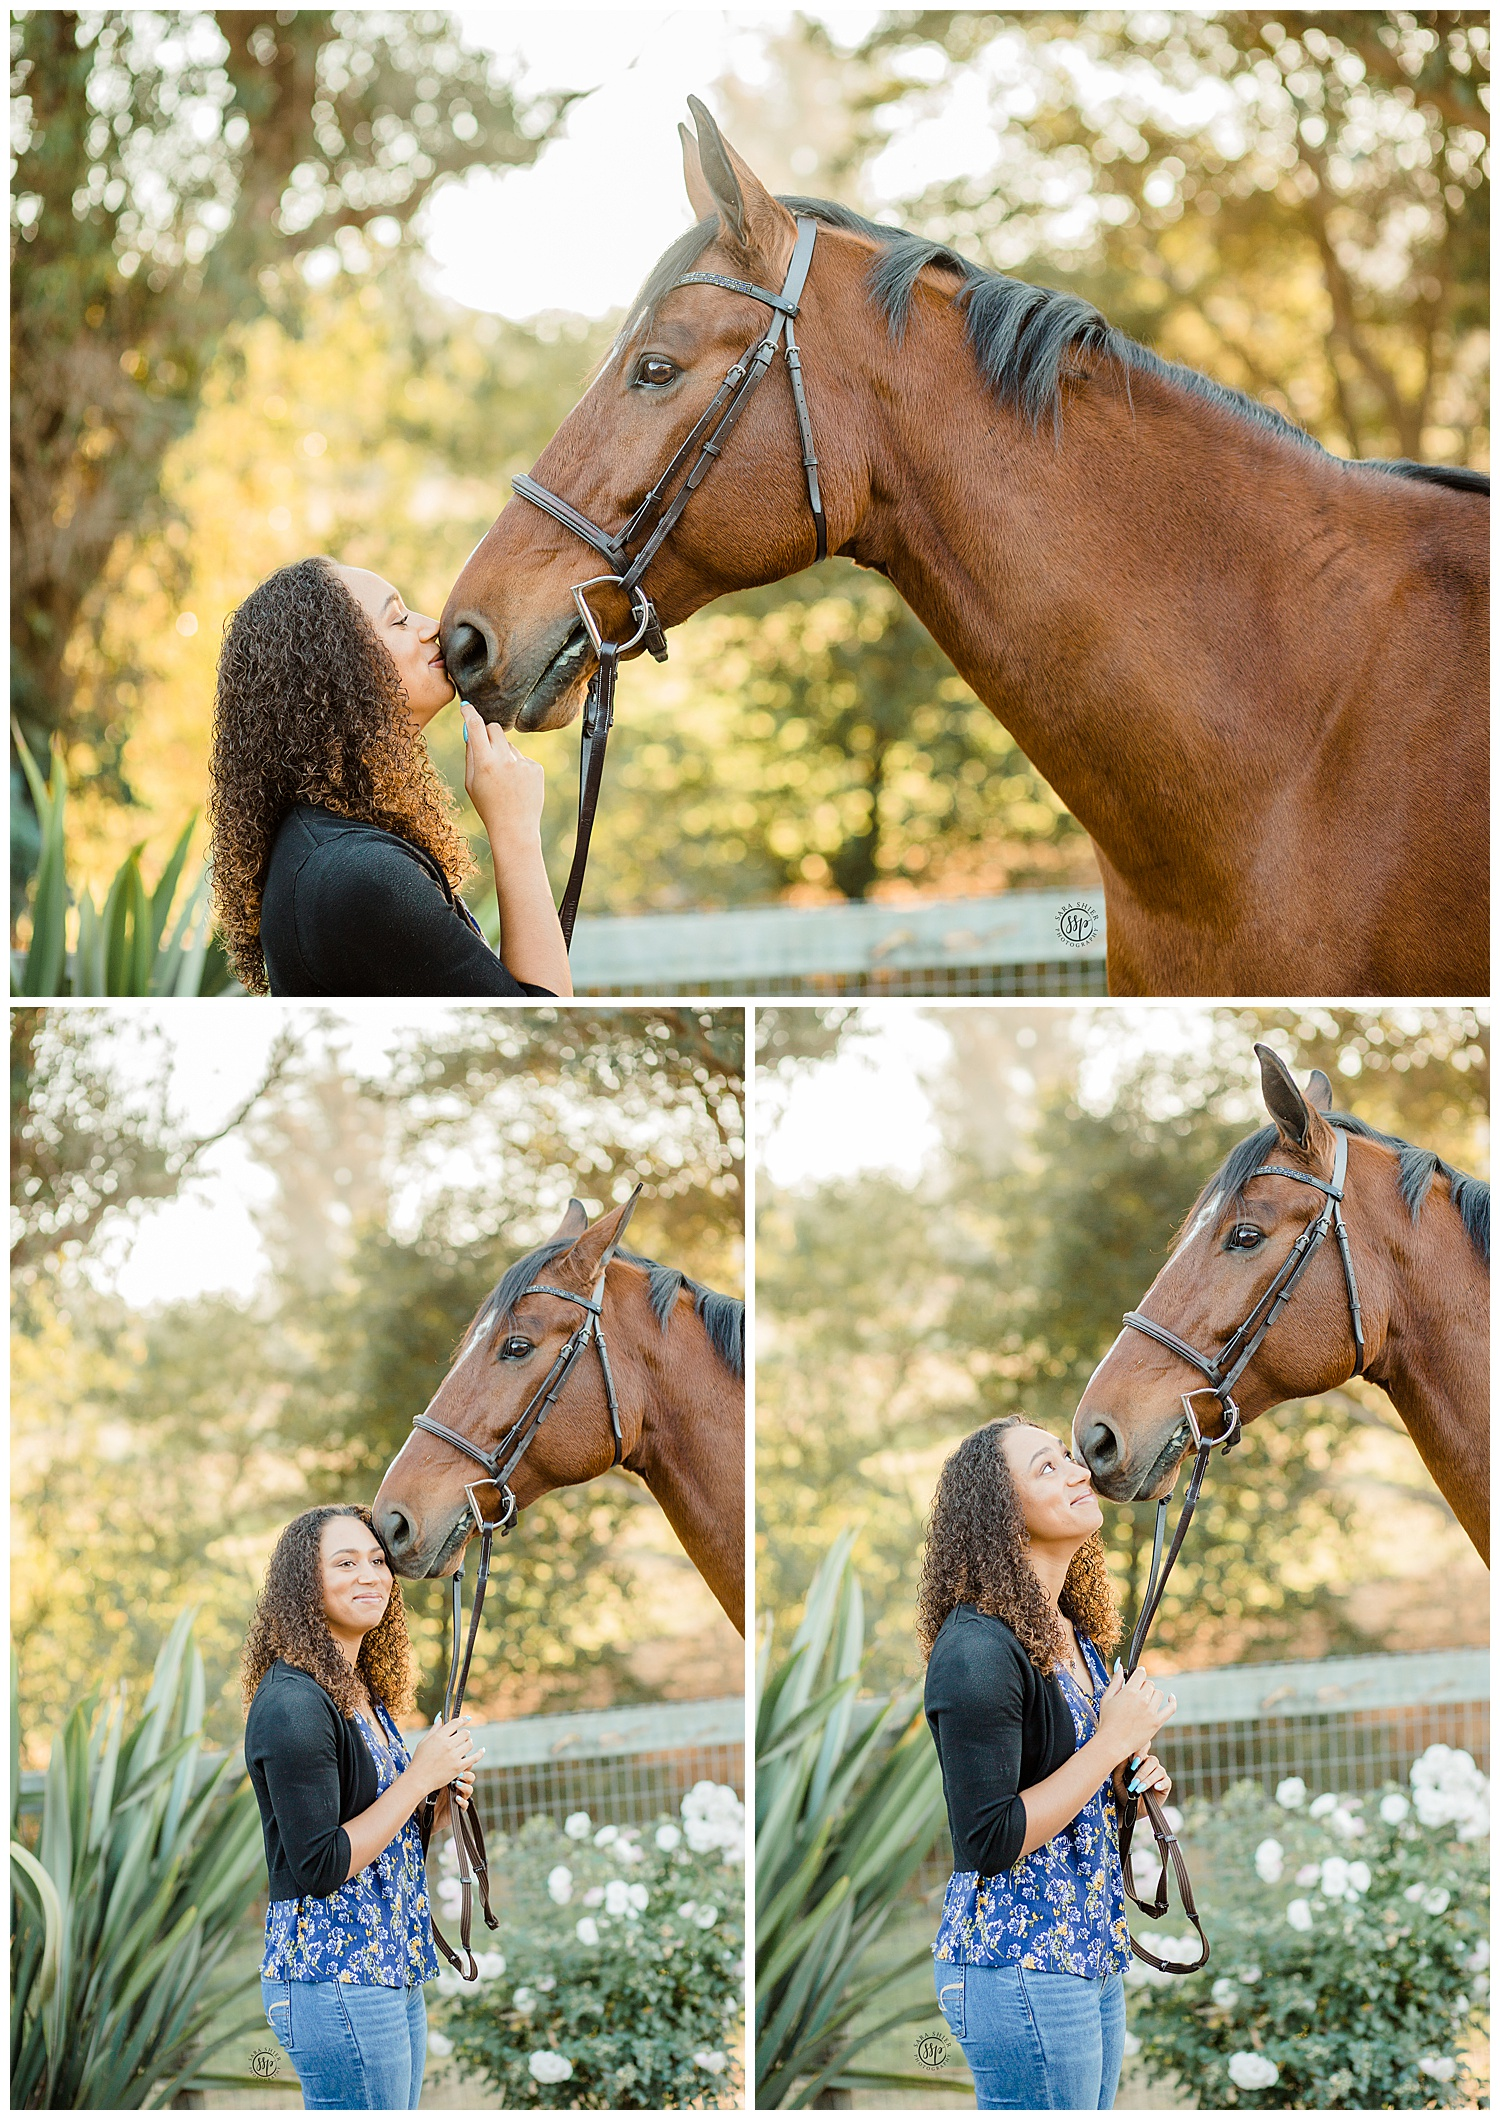 Black Background Horse Rider Equine Photographer Southern California Sara Shier Photography SoCal Equestrian Cowgirl_0238.jpg